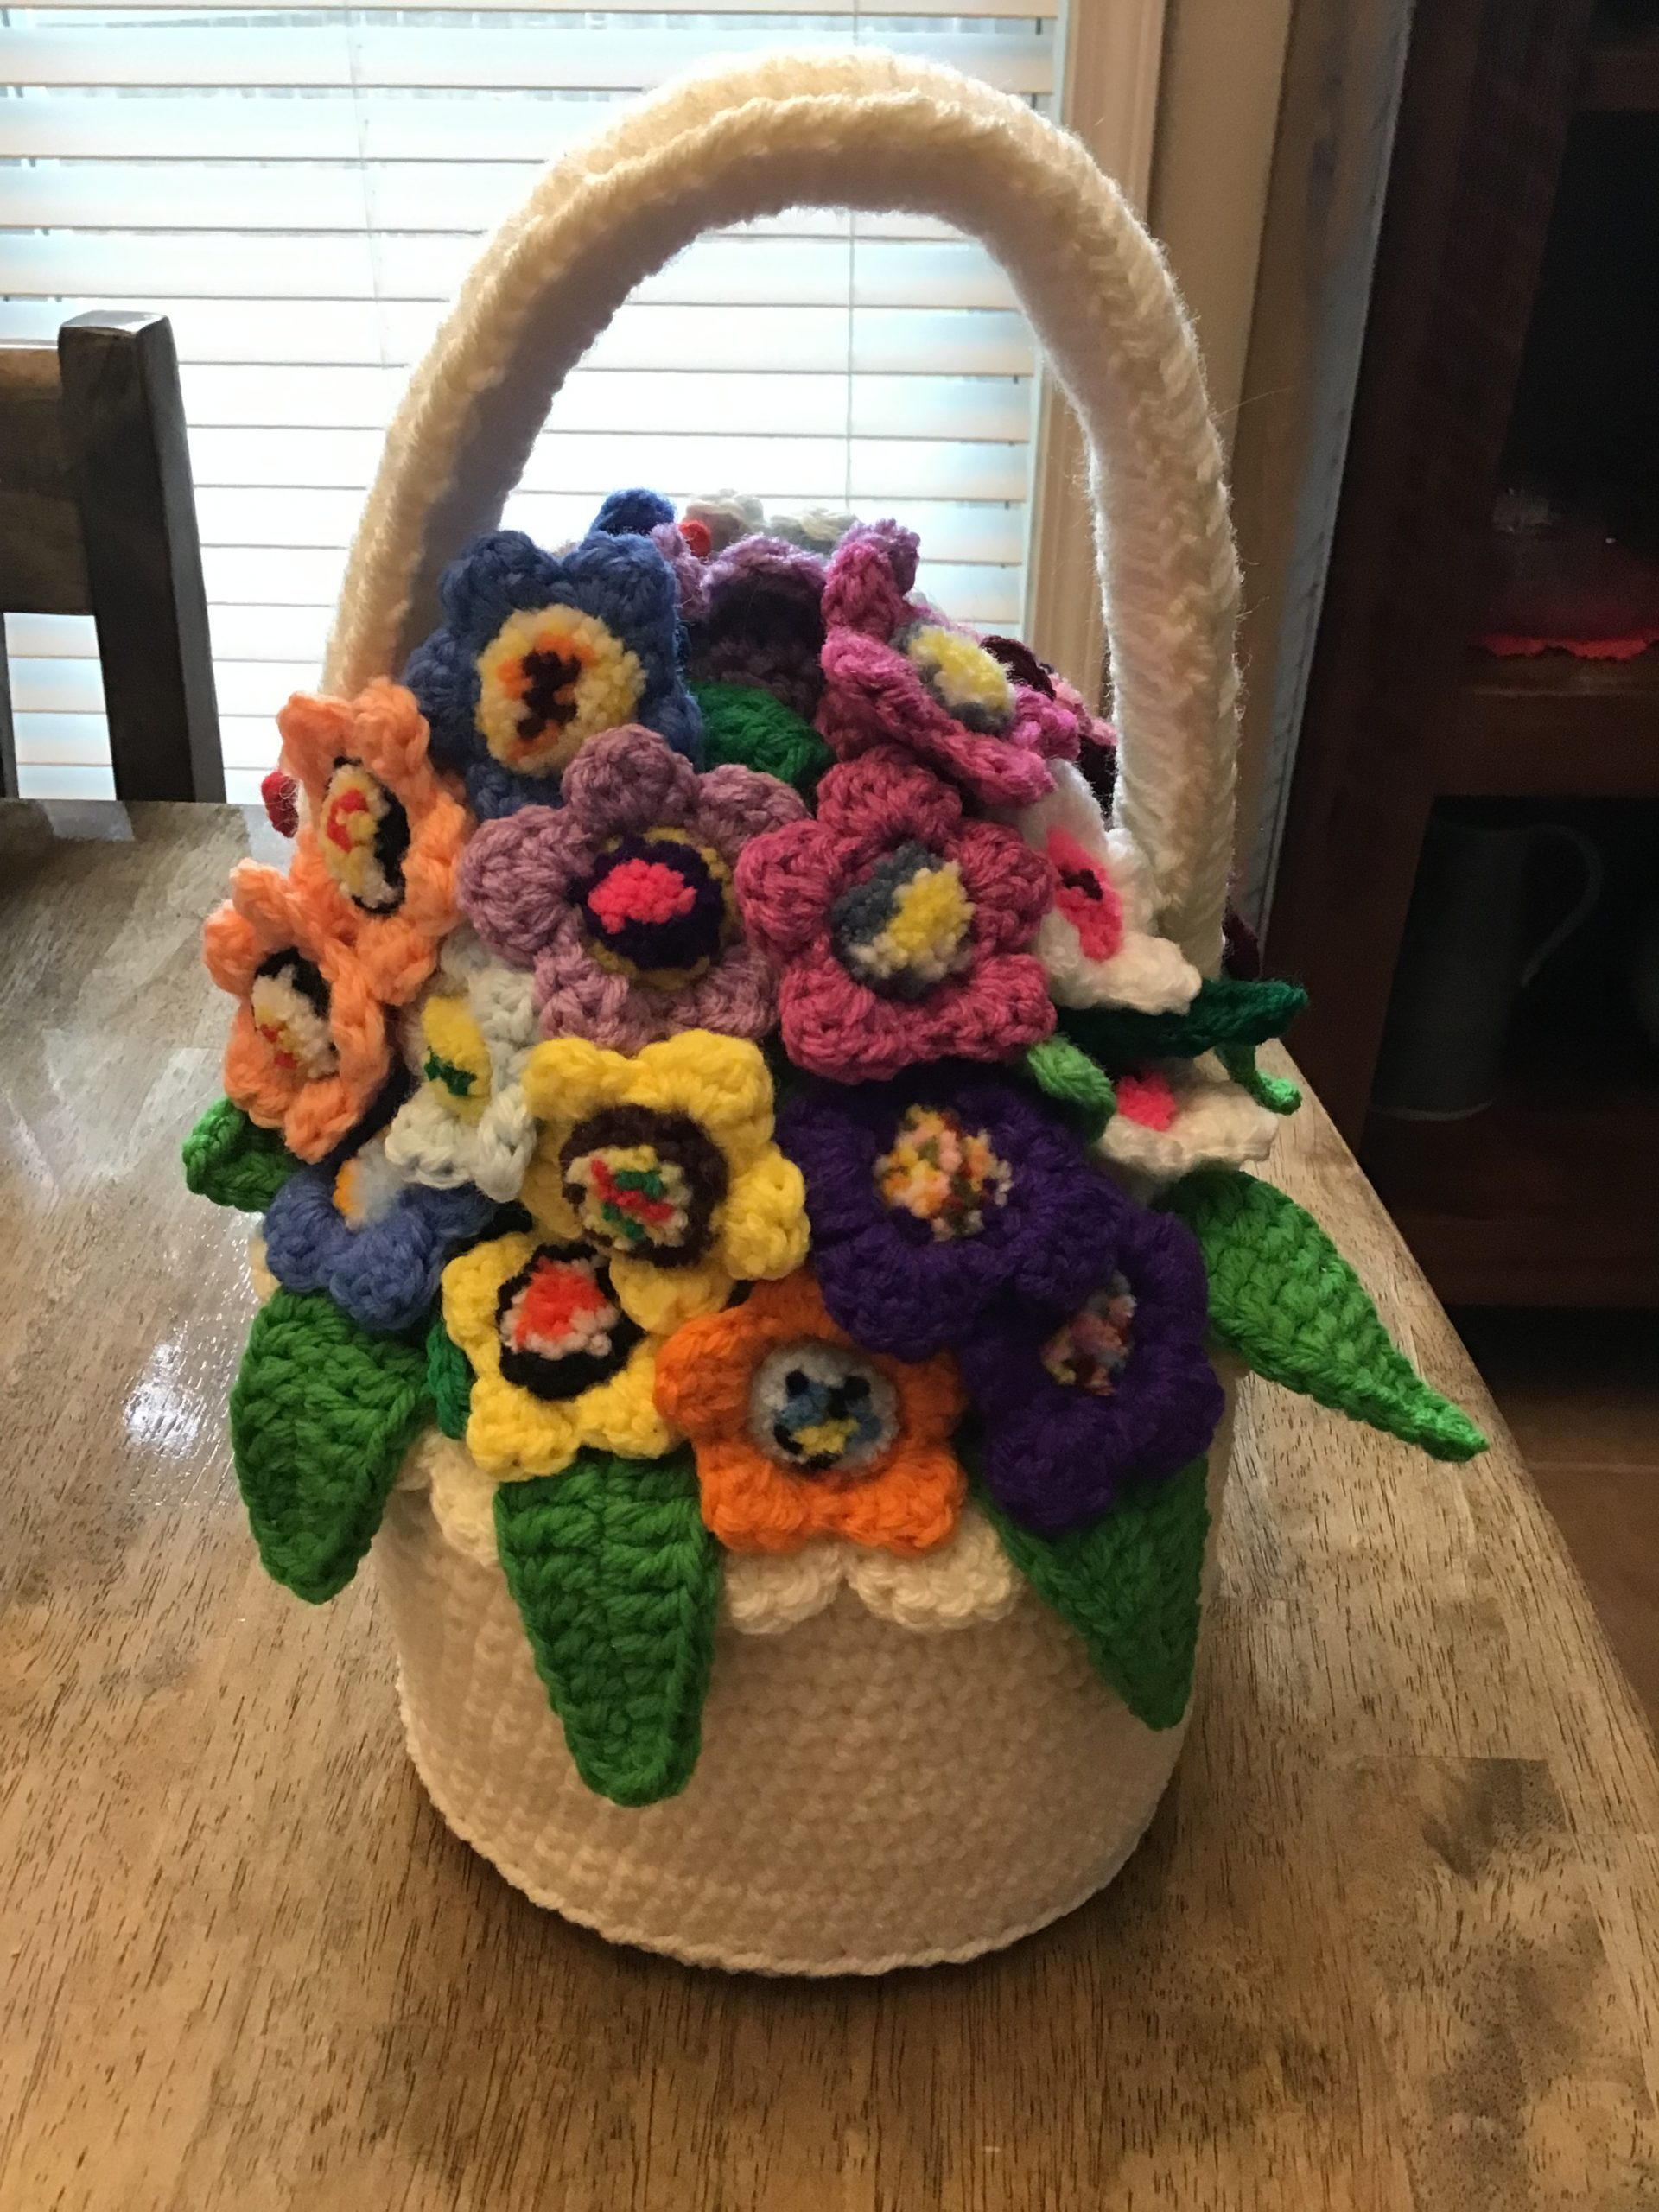 A basket and flowers made from yarn.